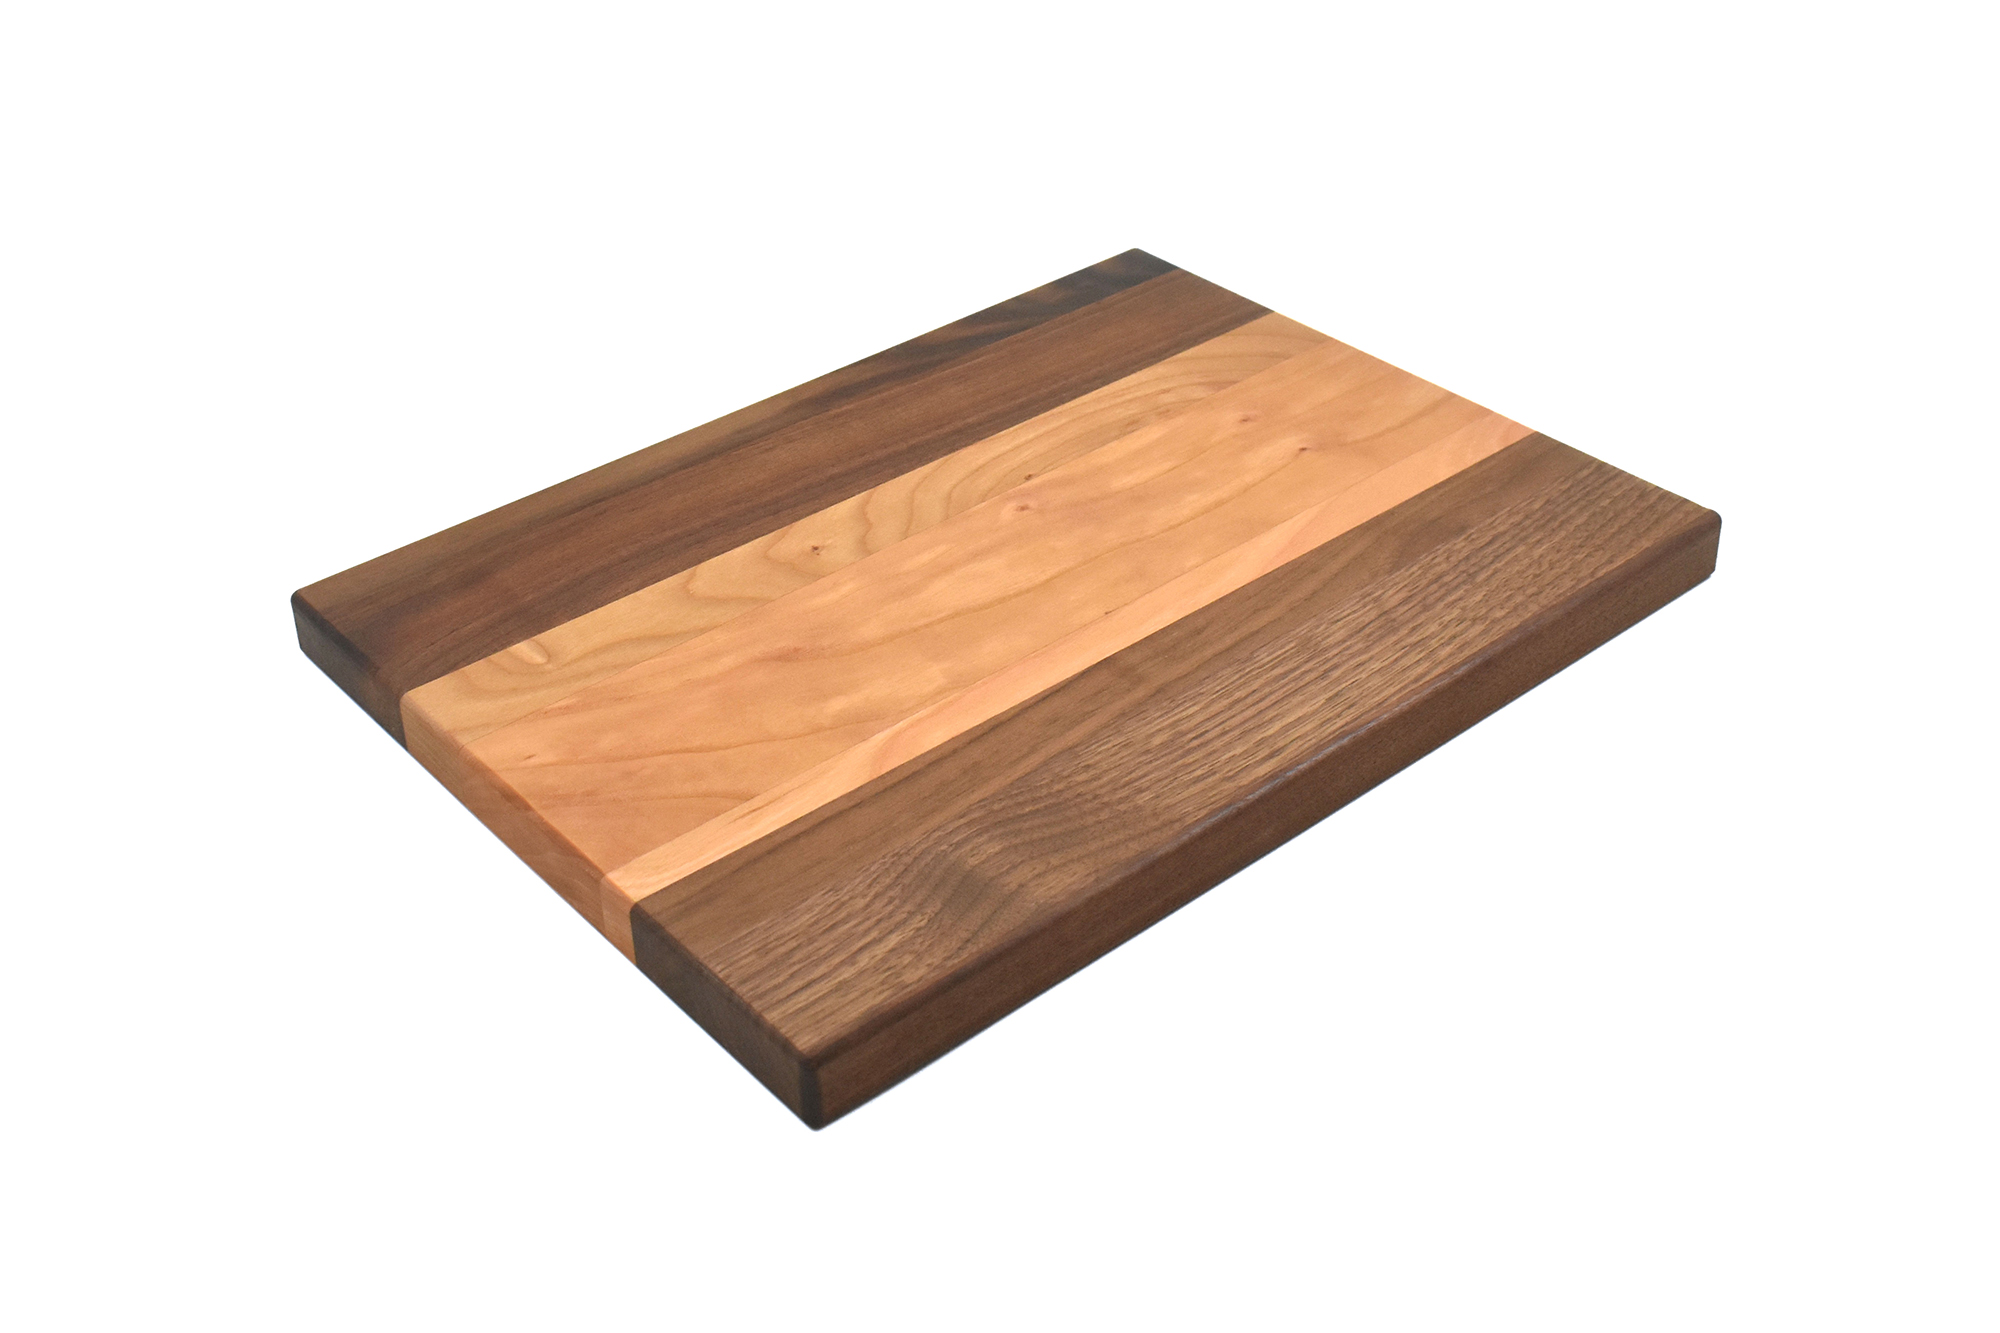 Multi wood species cutting board - Walnut wood ends with Cherry wood in the middle